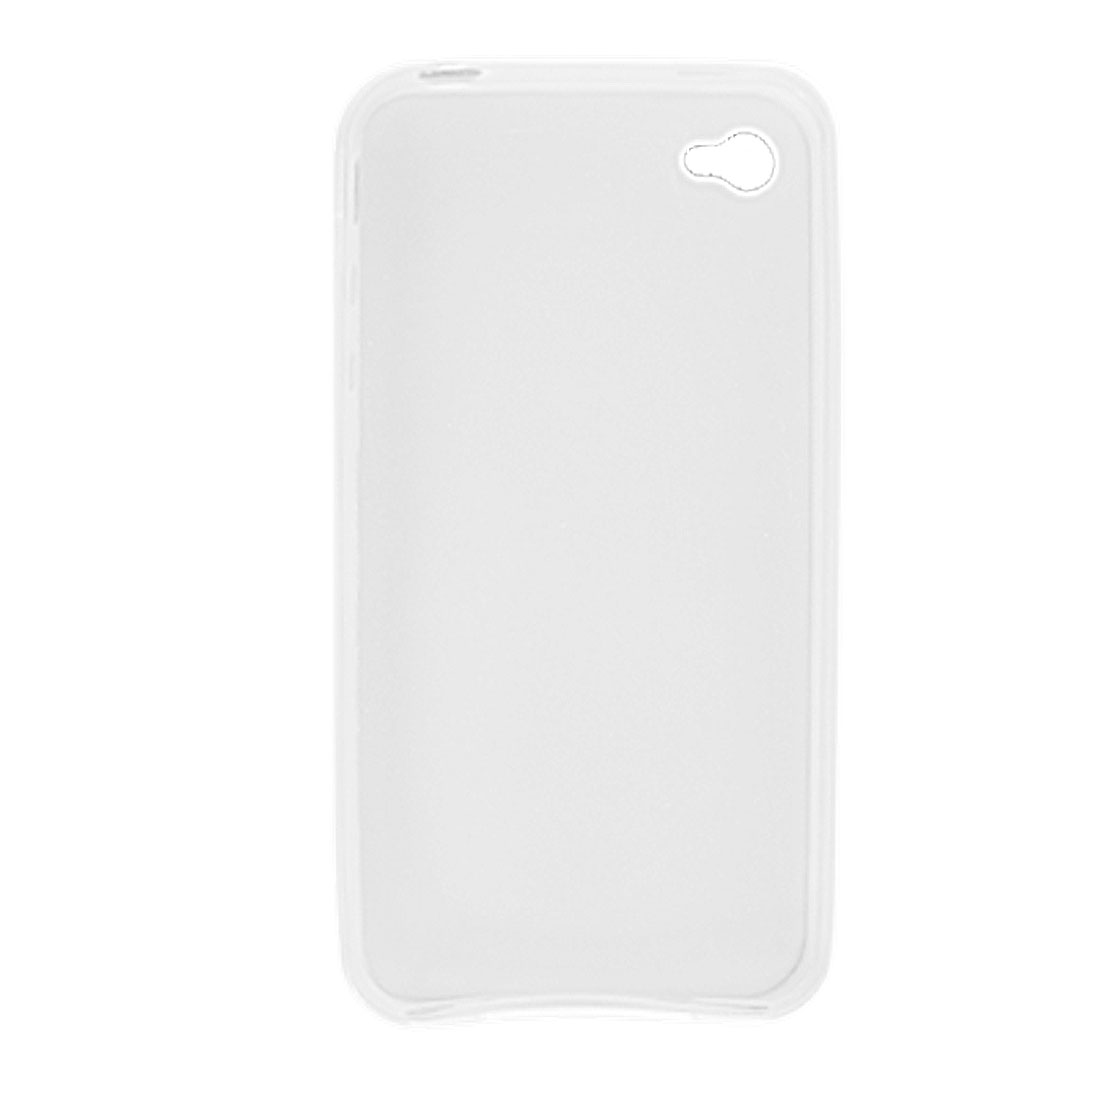 Protective Clear White Soft Plastic Case Cover for Apple iPhone 4 4G